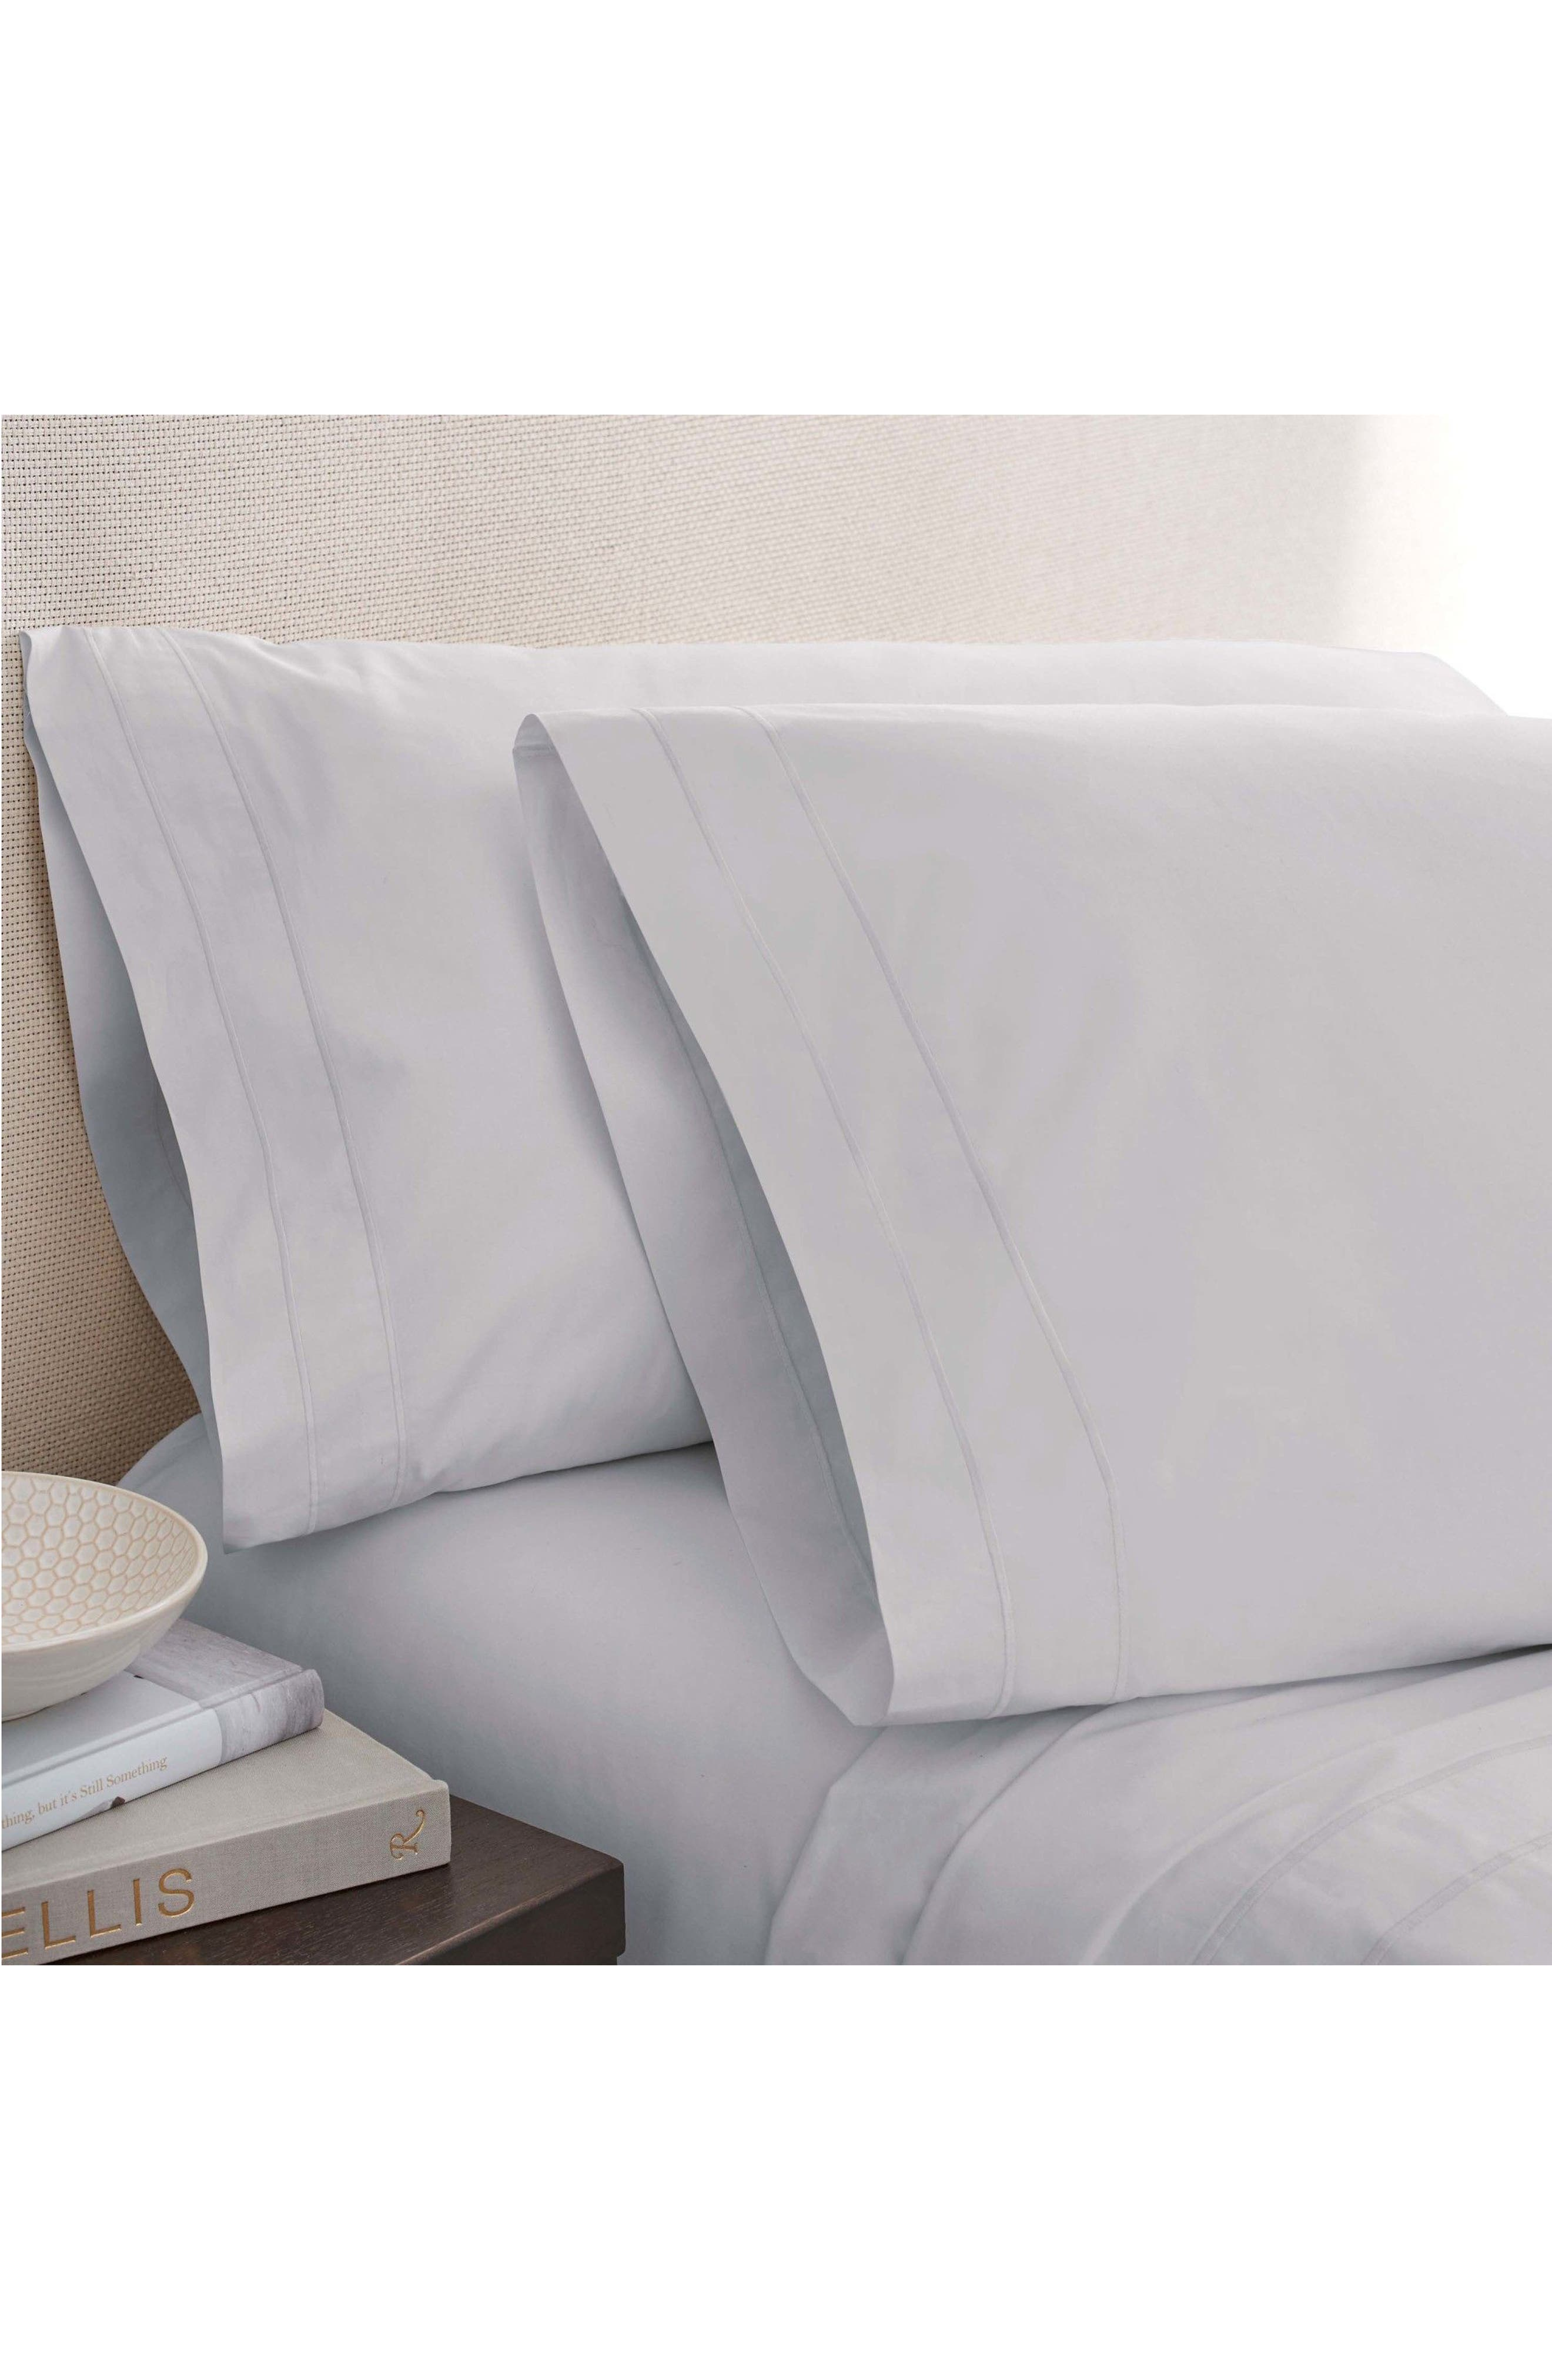 Alternate Image 1 Selected - Portico The Denizen Organic Cotton Fitted Sheet